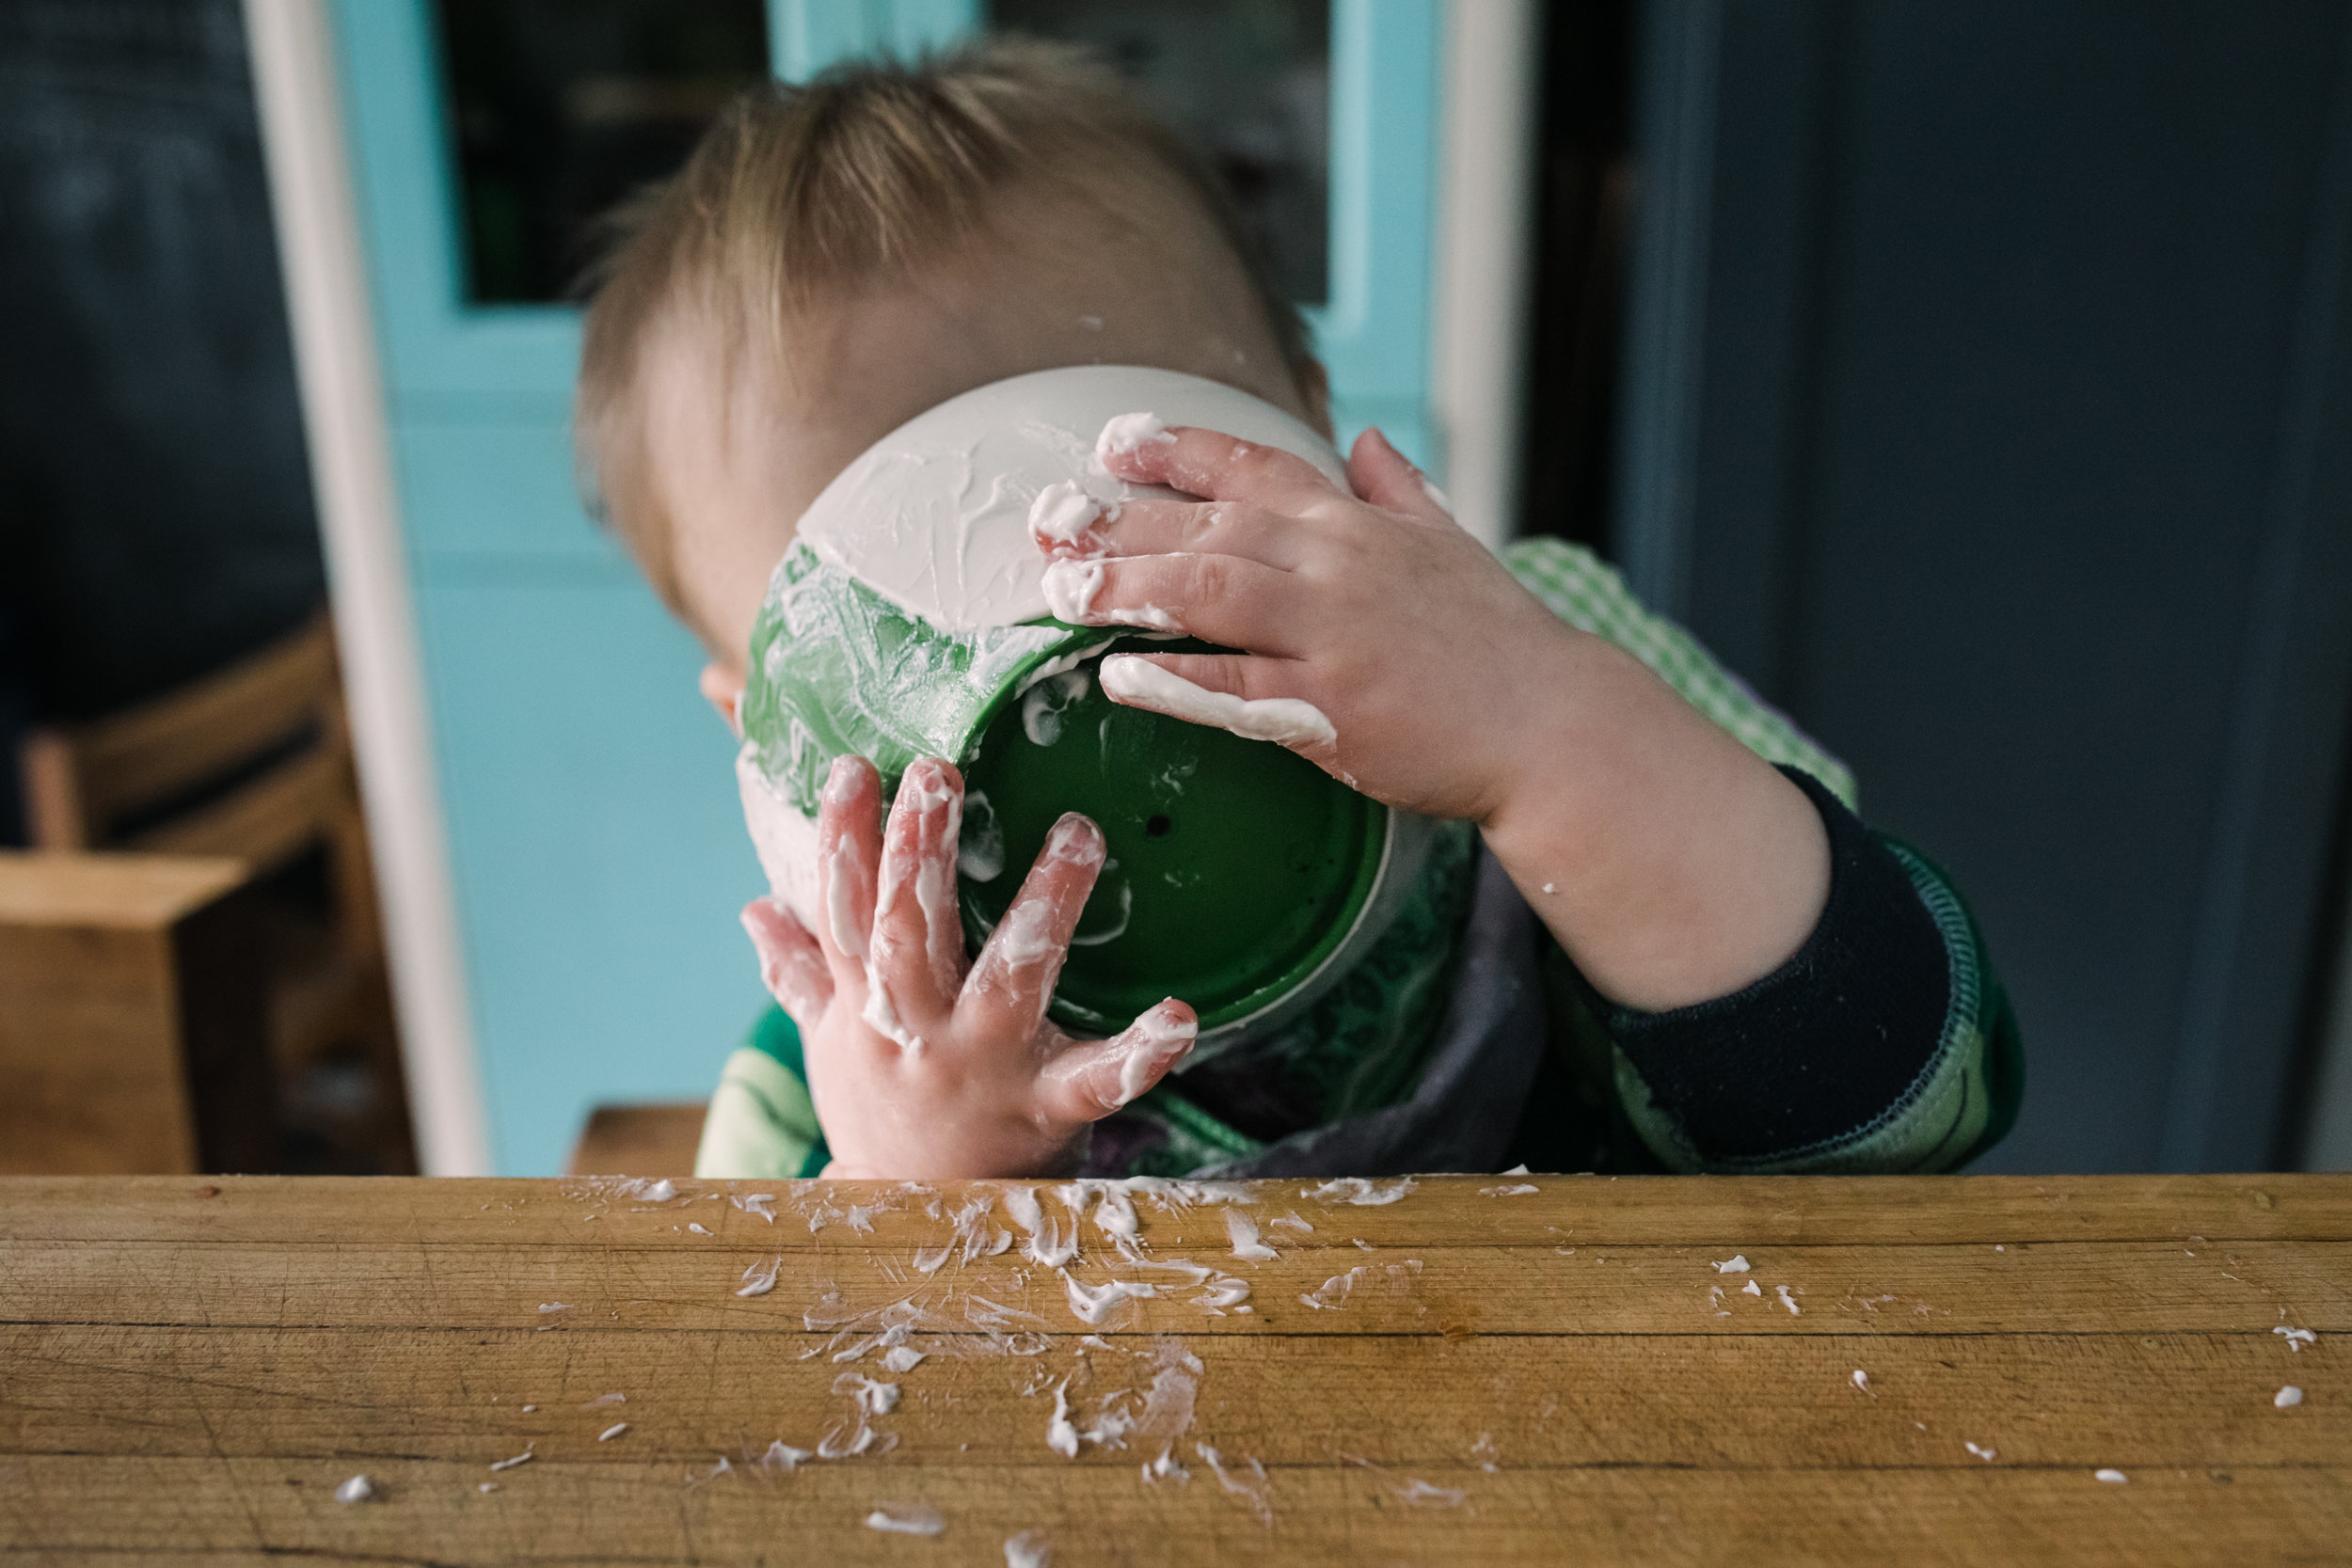 Baby holds bowl of yogurt close to his face